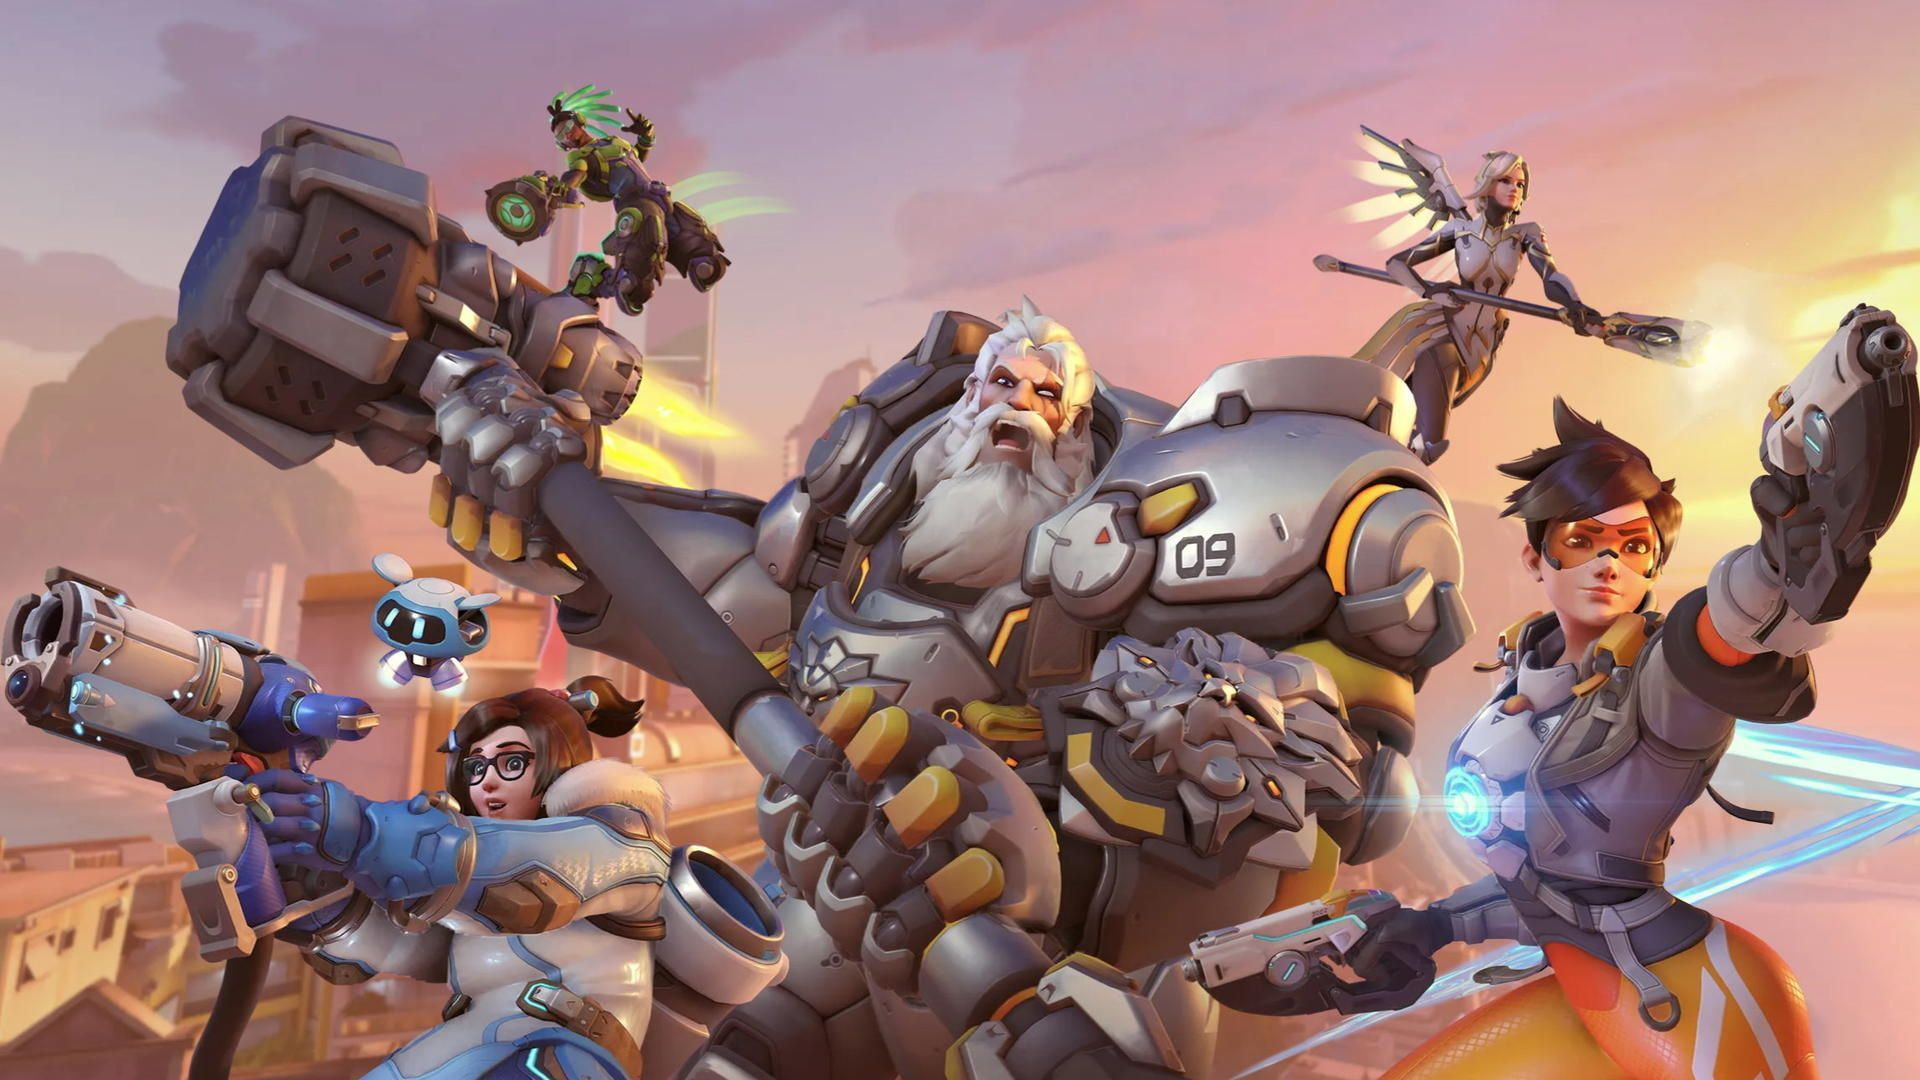 /overwatch-2-release-date-and-gameplay-everything-we-know-so-far-pg2g33b5 feature image